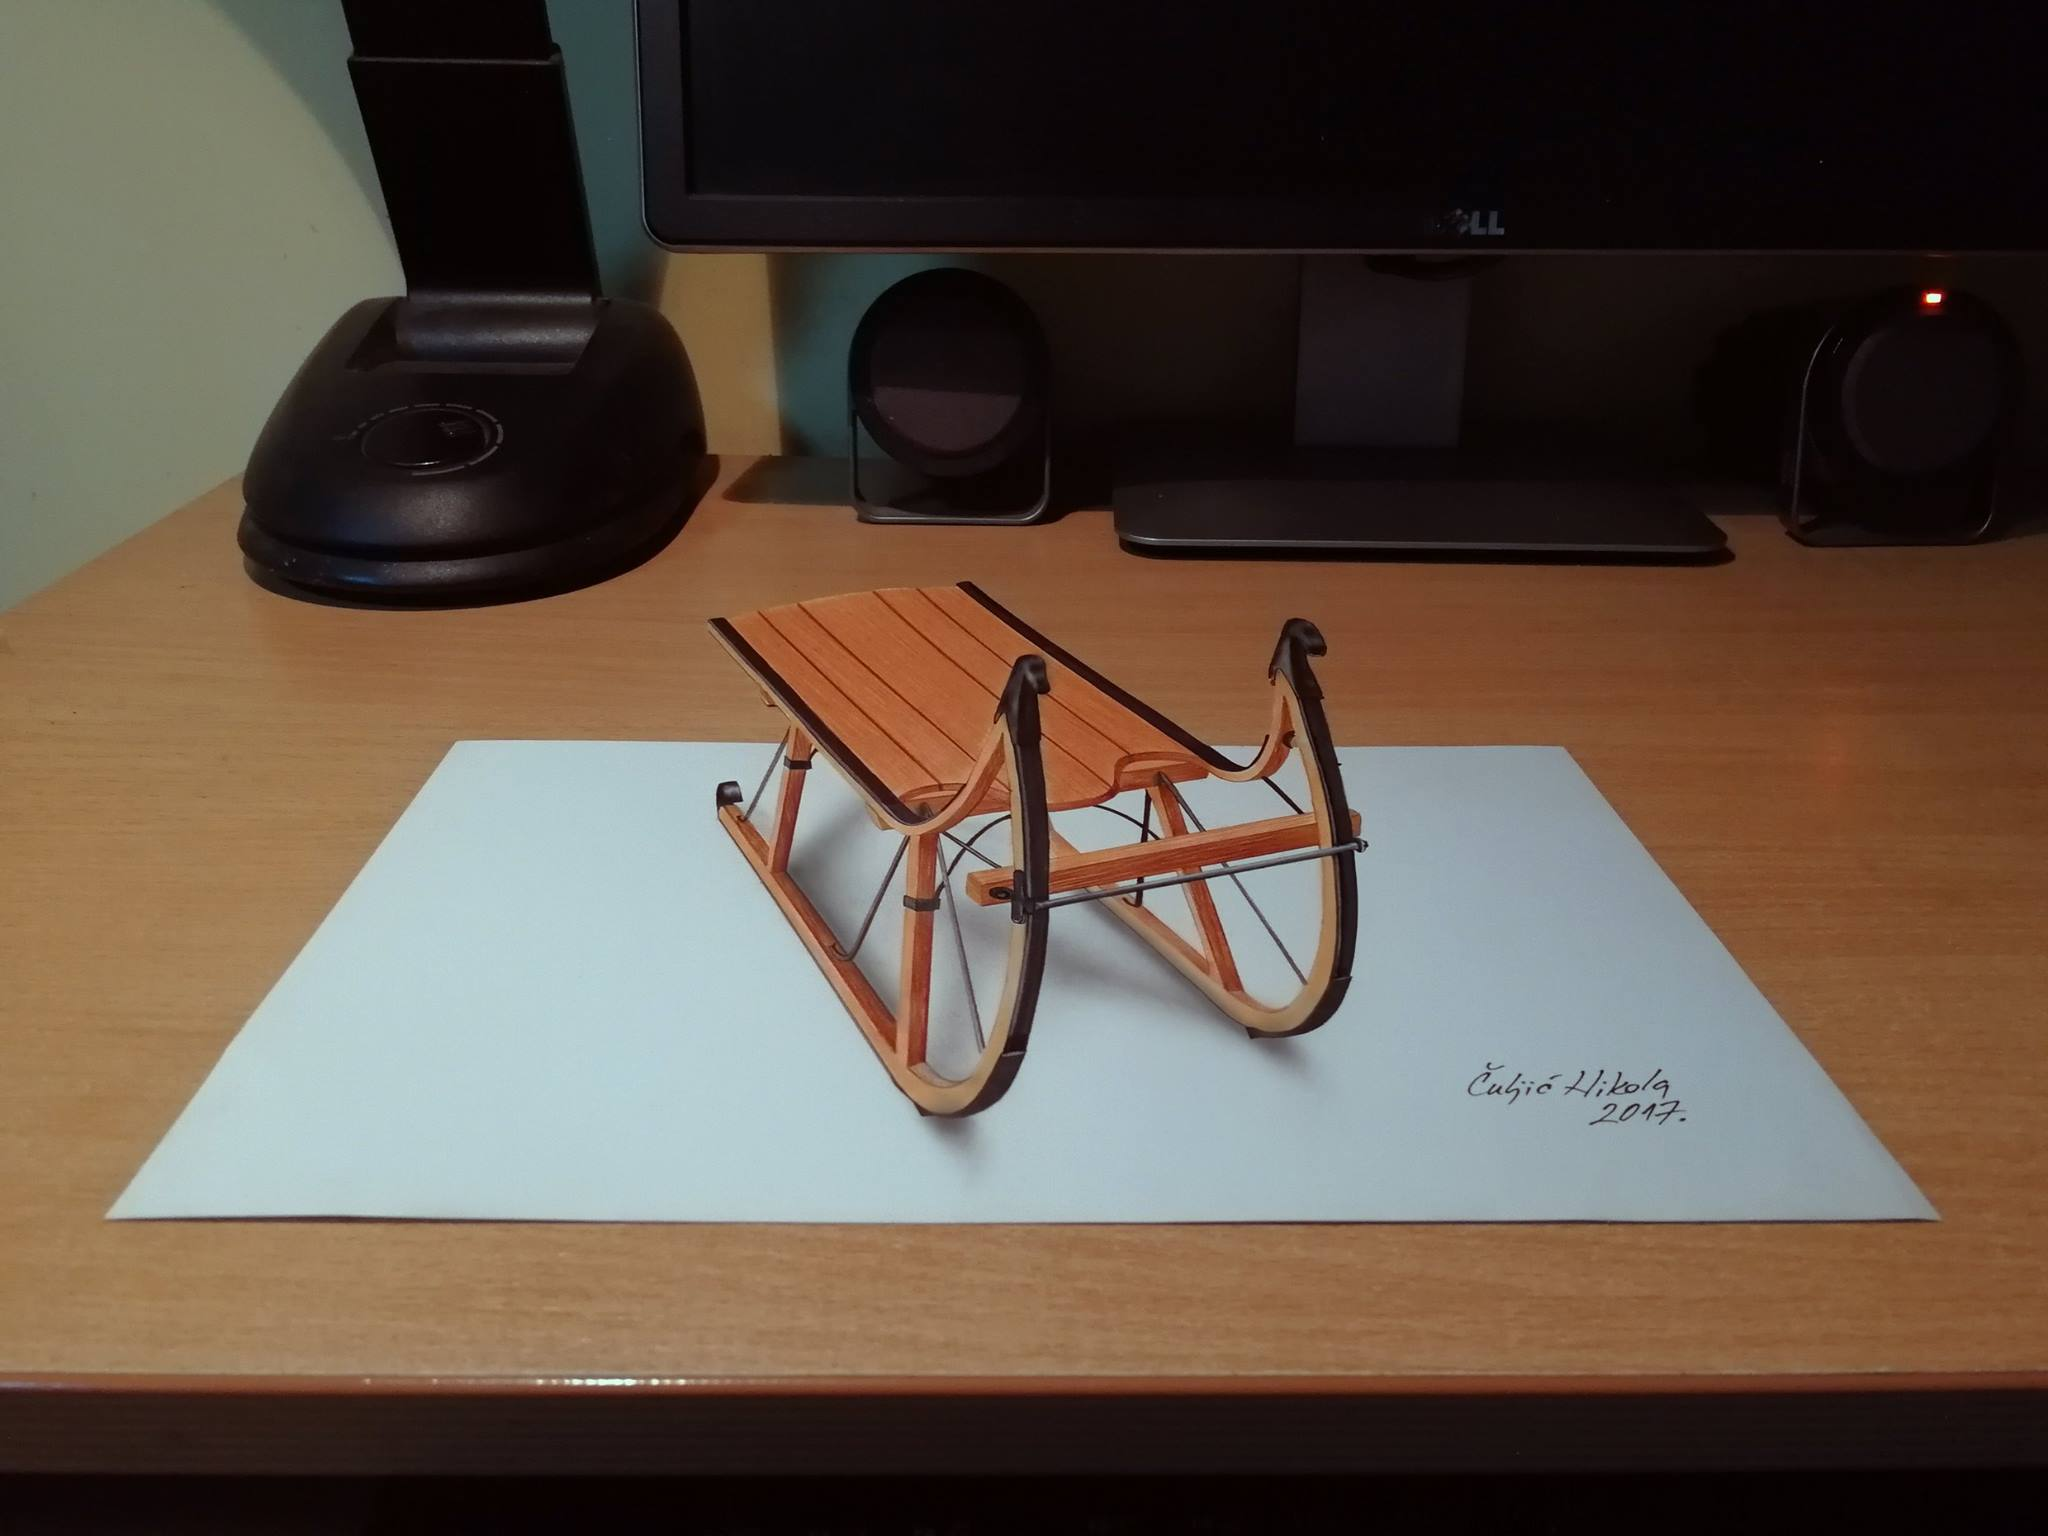 3d-drawings-by-nikola-culjiic-6.jpg